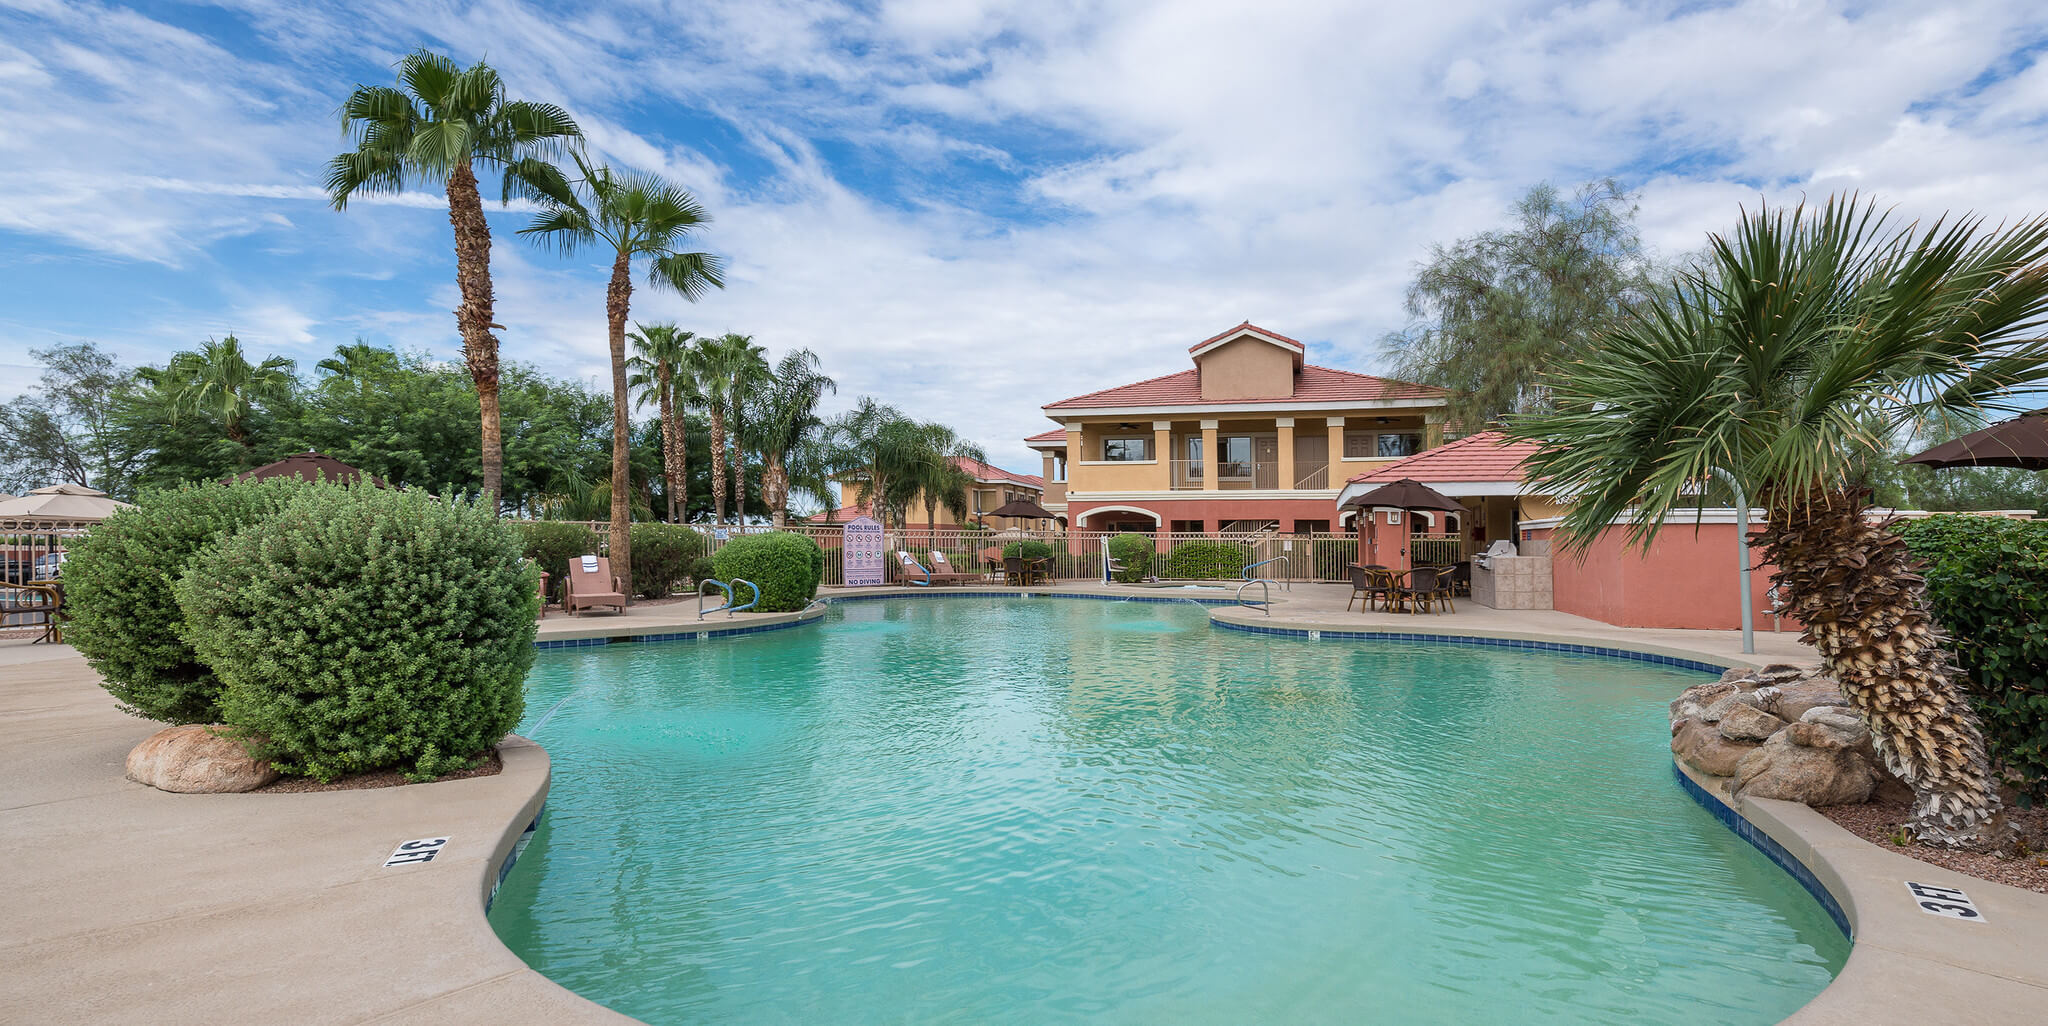 Heated Outdoor Pool Onsite At The Best Arizona Golf Resort Mesa Has To Offer Westgate